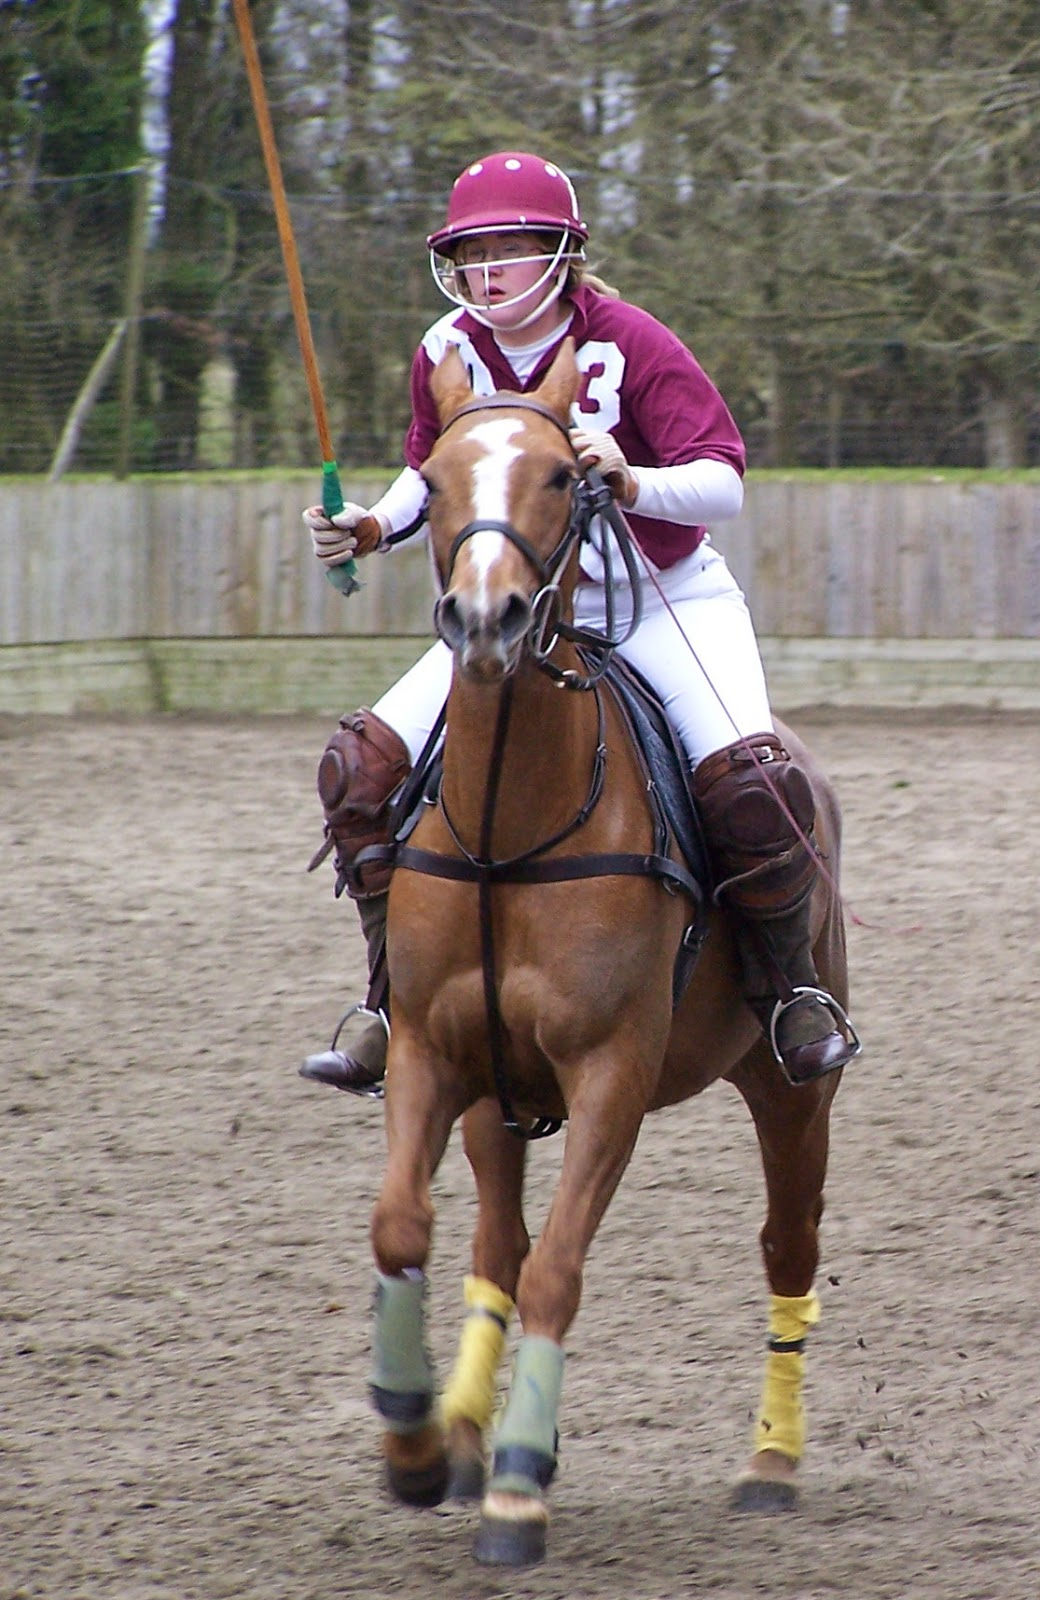 Competing in England